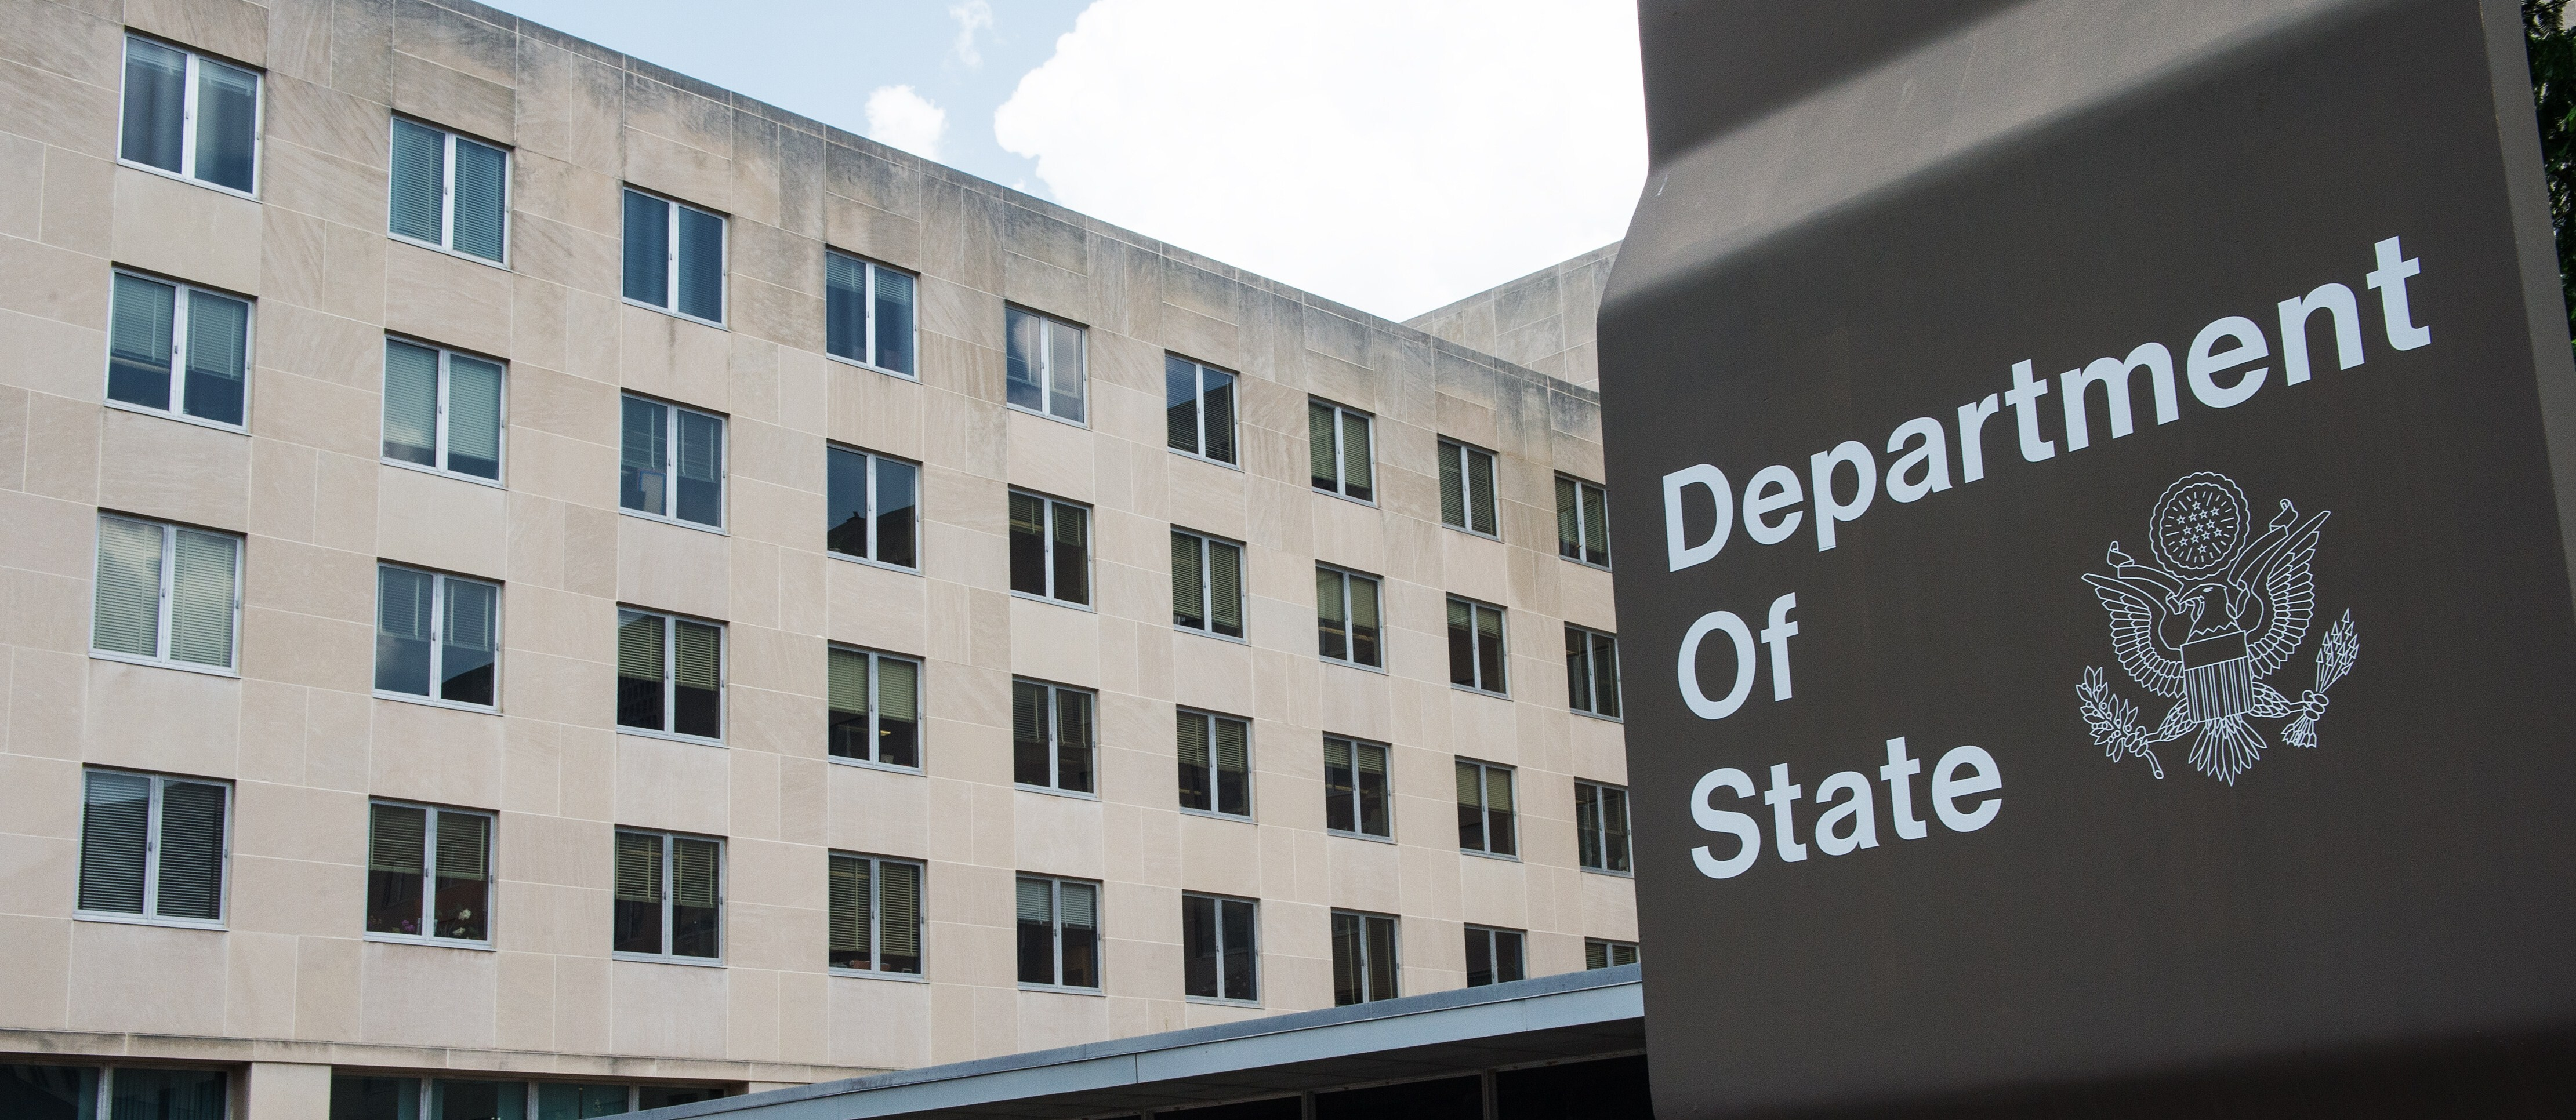 'Progress on a number of fronts' following US-Taliban meetings, State Department says